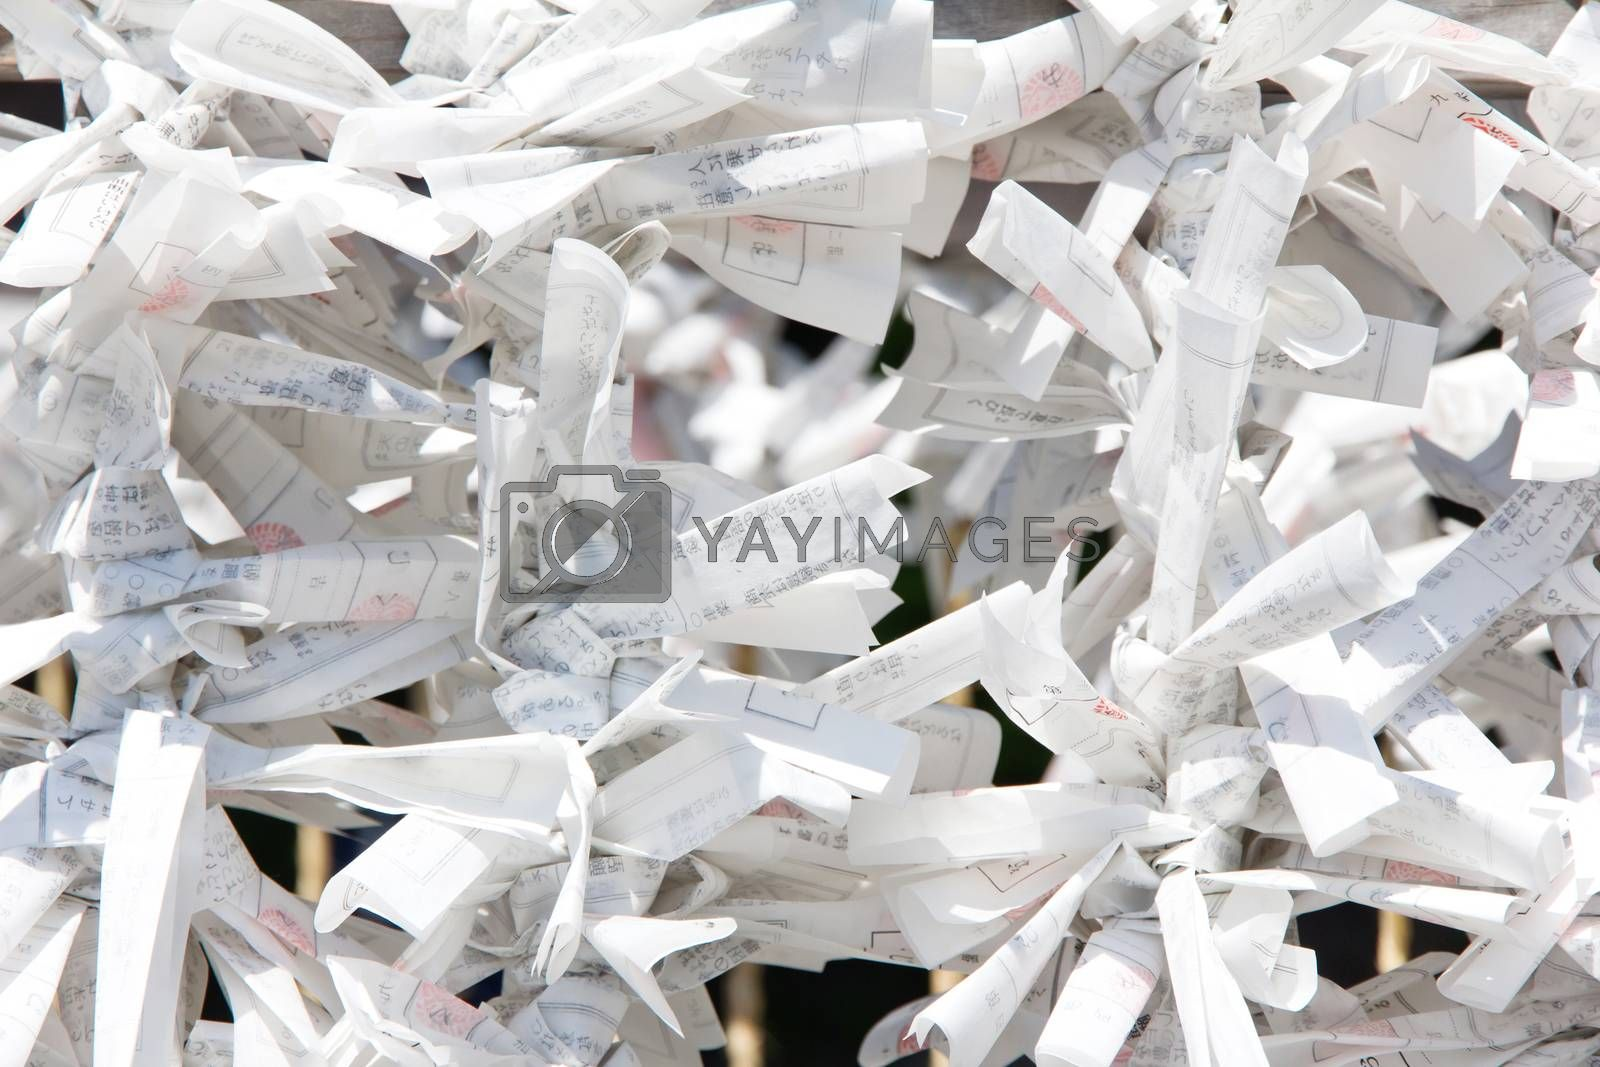 Royalty free image of Tokyo, Japan - omikuji fortune paper hanged on a line in a temple by ponsulak